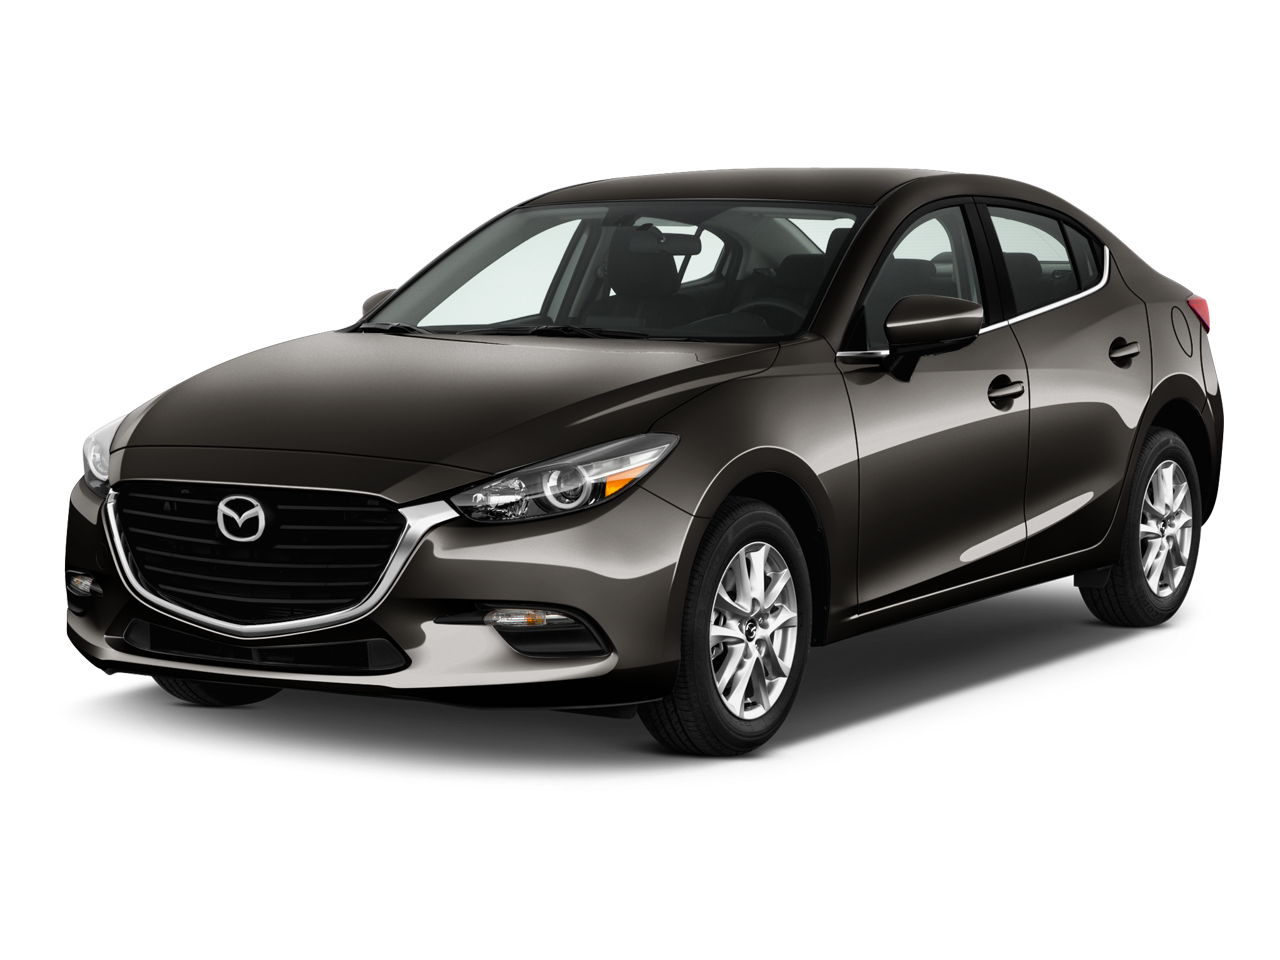 Russ Darrow Mazda >> Mazda Dealer Incentives - Russ Darrow Mazda of Madison